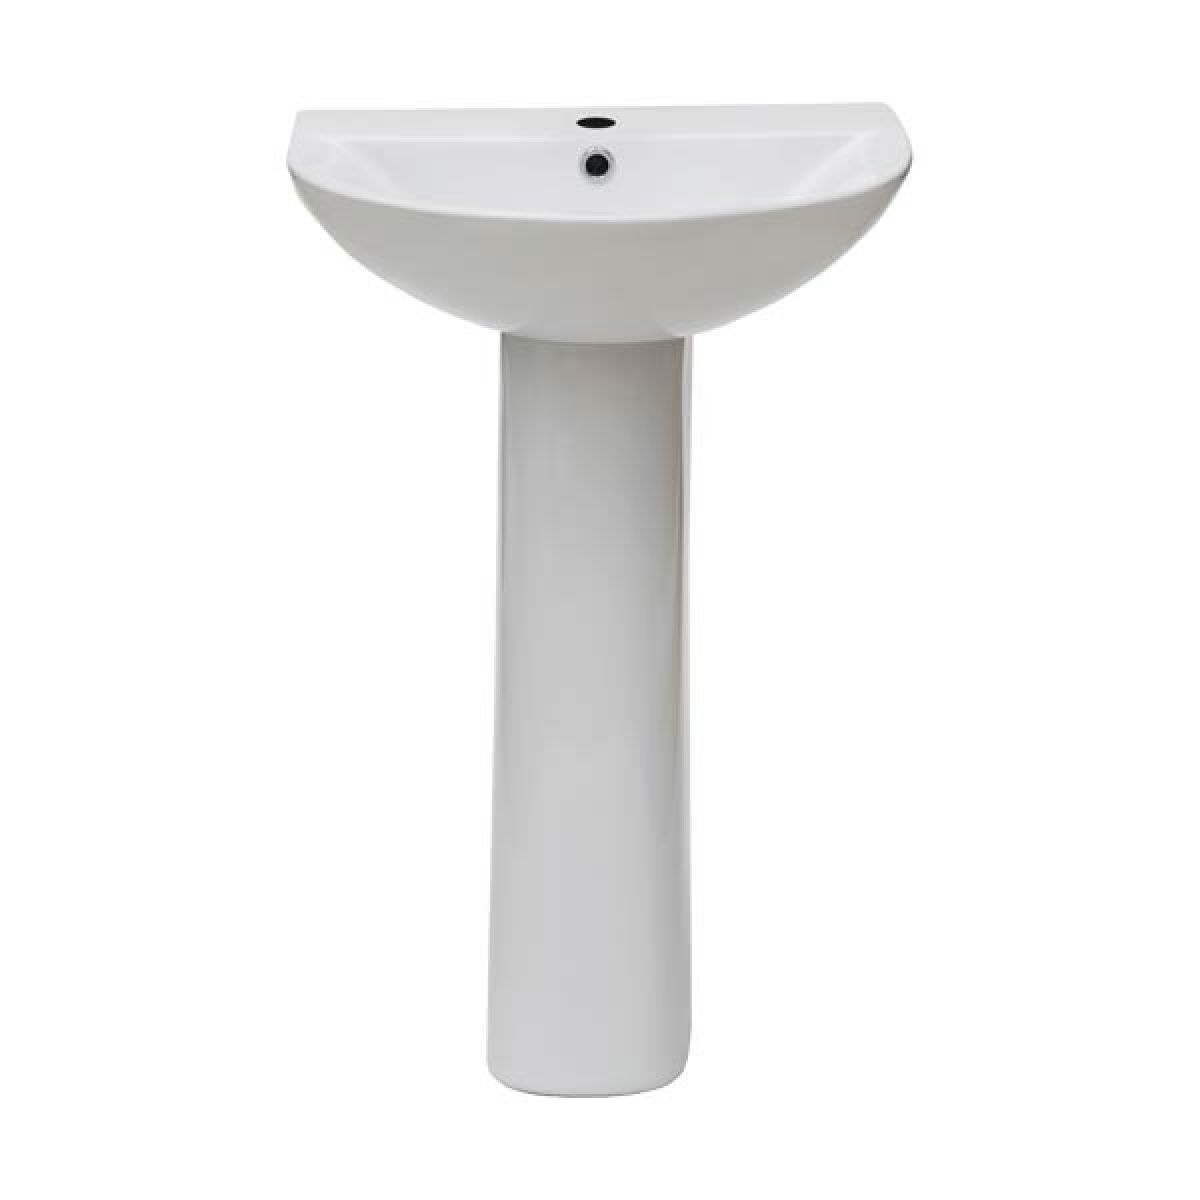 Frontline F60R 1 Tap Hole Basin with Pedistal 550mm